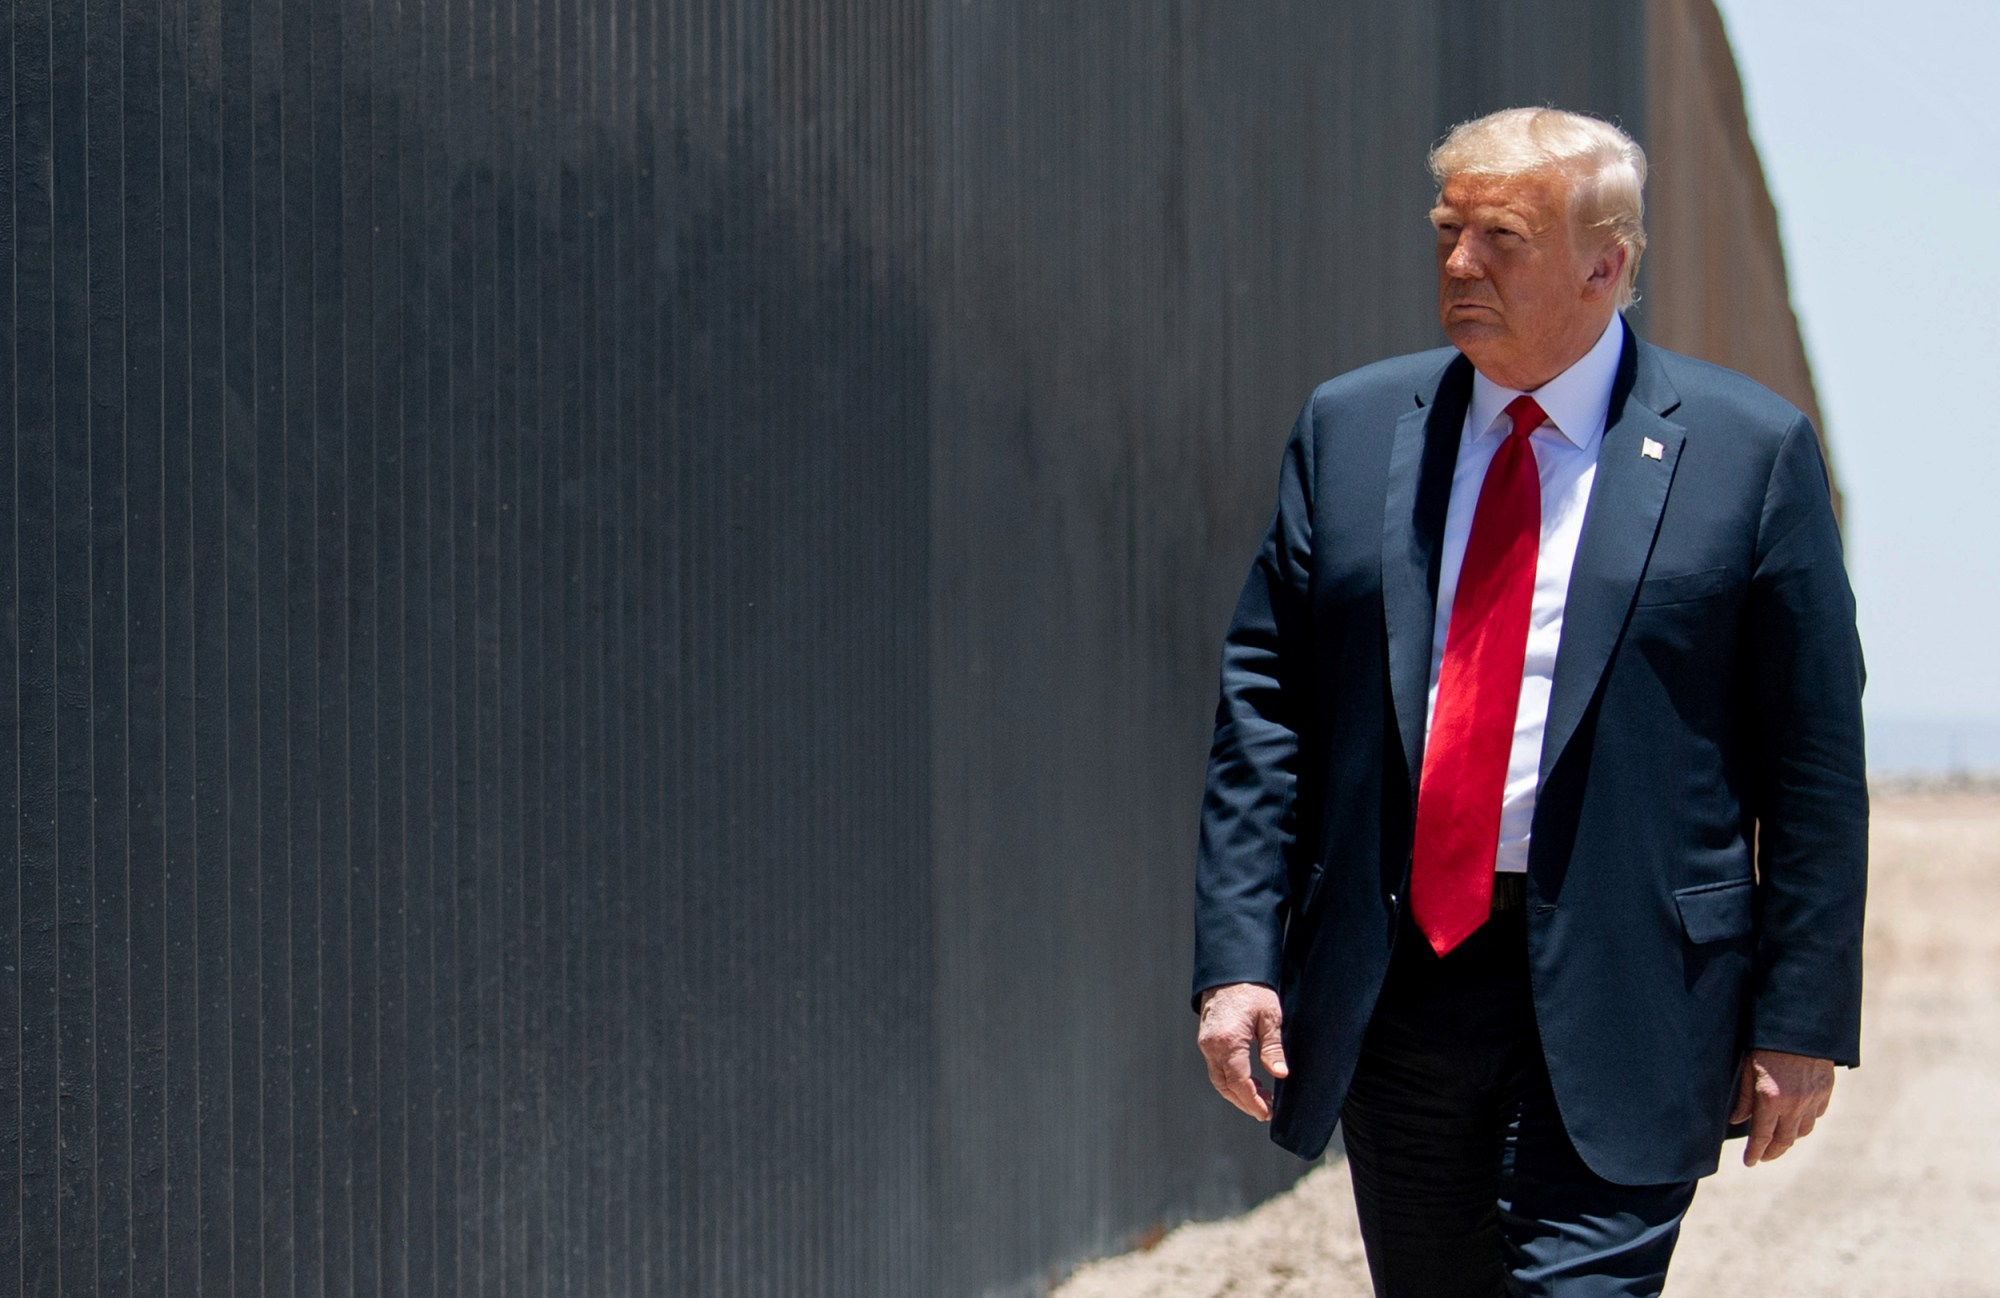 US President Donald Trump participates in a ceremony commemorating the 200th mile of border wall at the international border with Mexico in San Luis, Arizona, June 23, 2020. (Saul Loeb/AFP/Getty Images via CNN Wire)